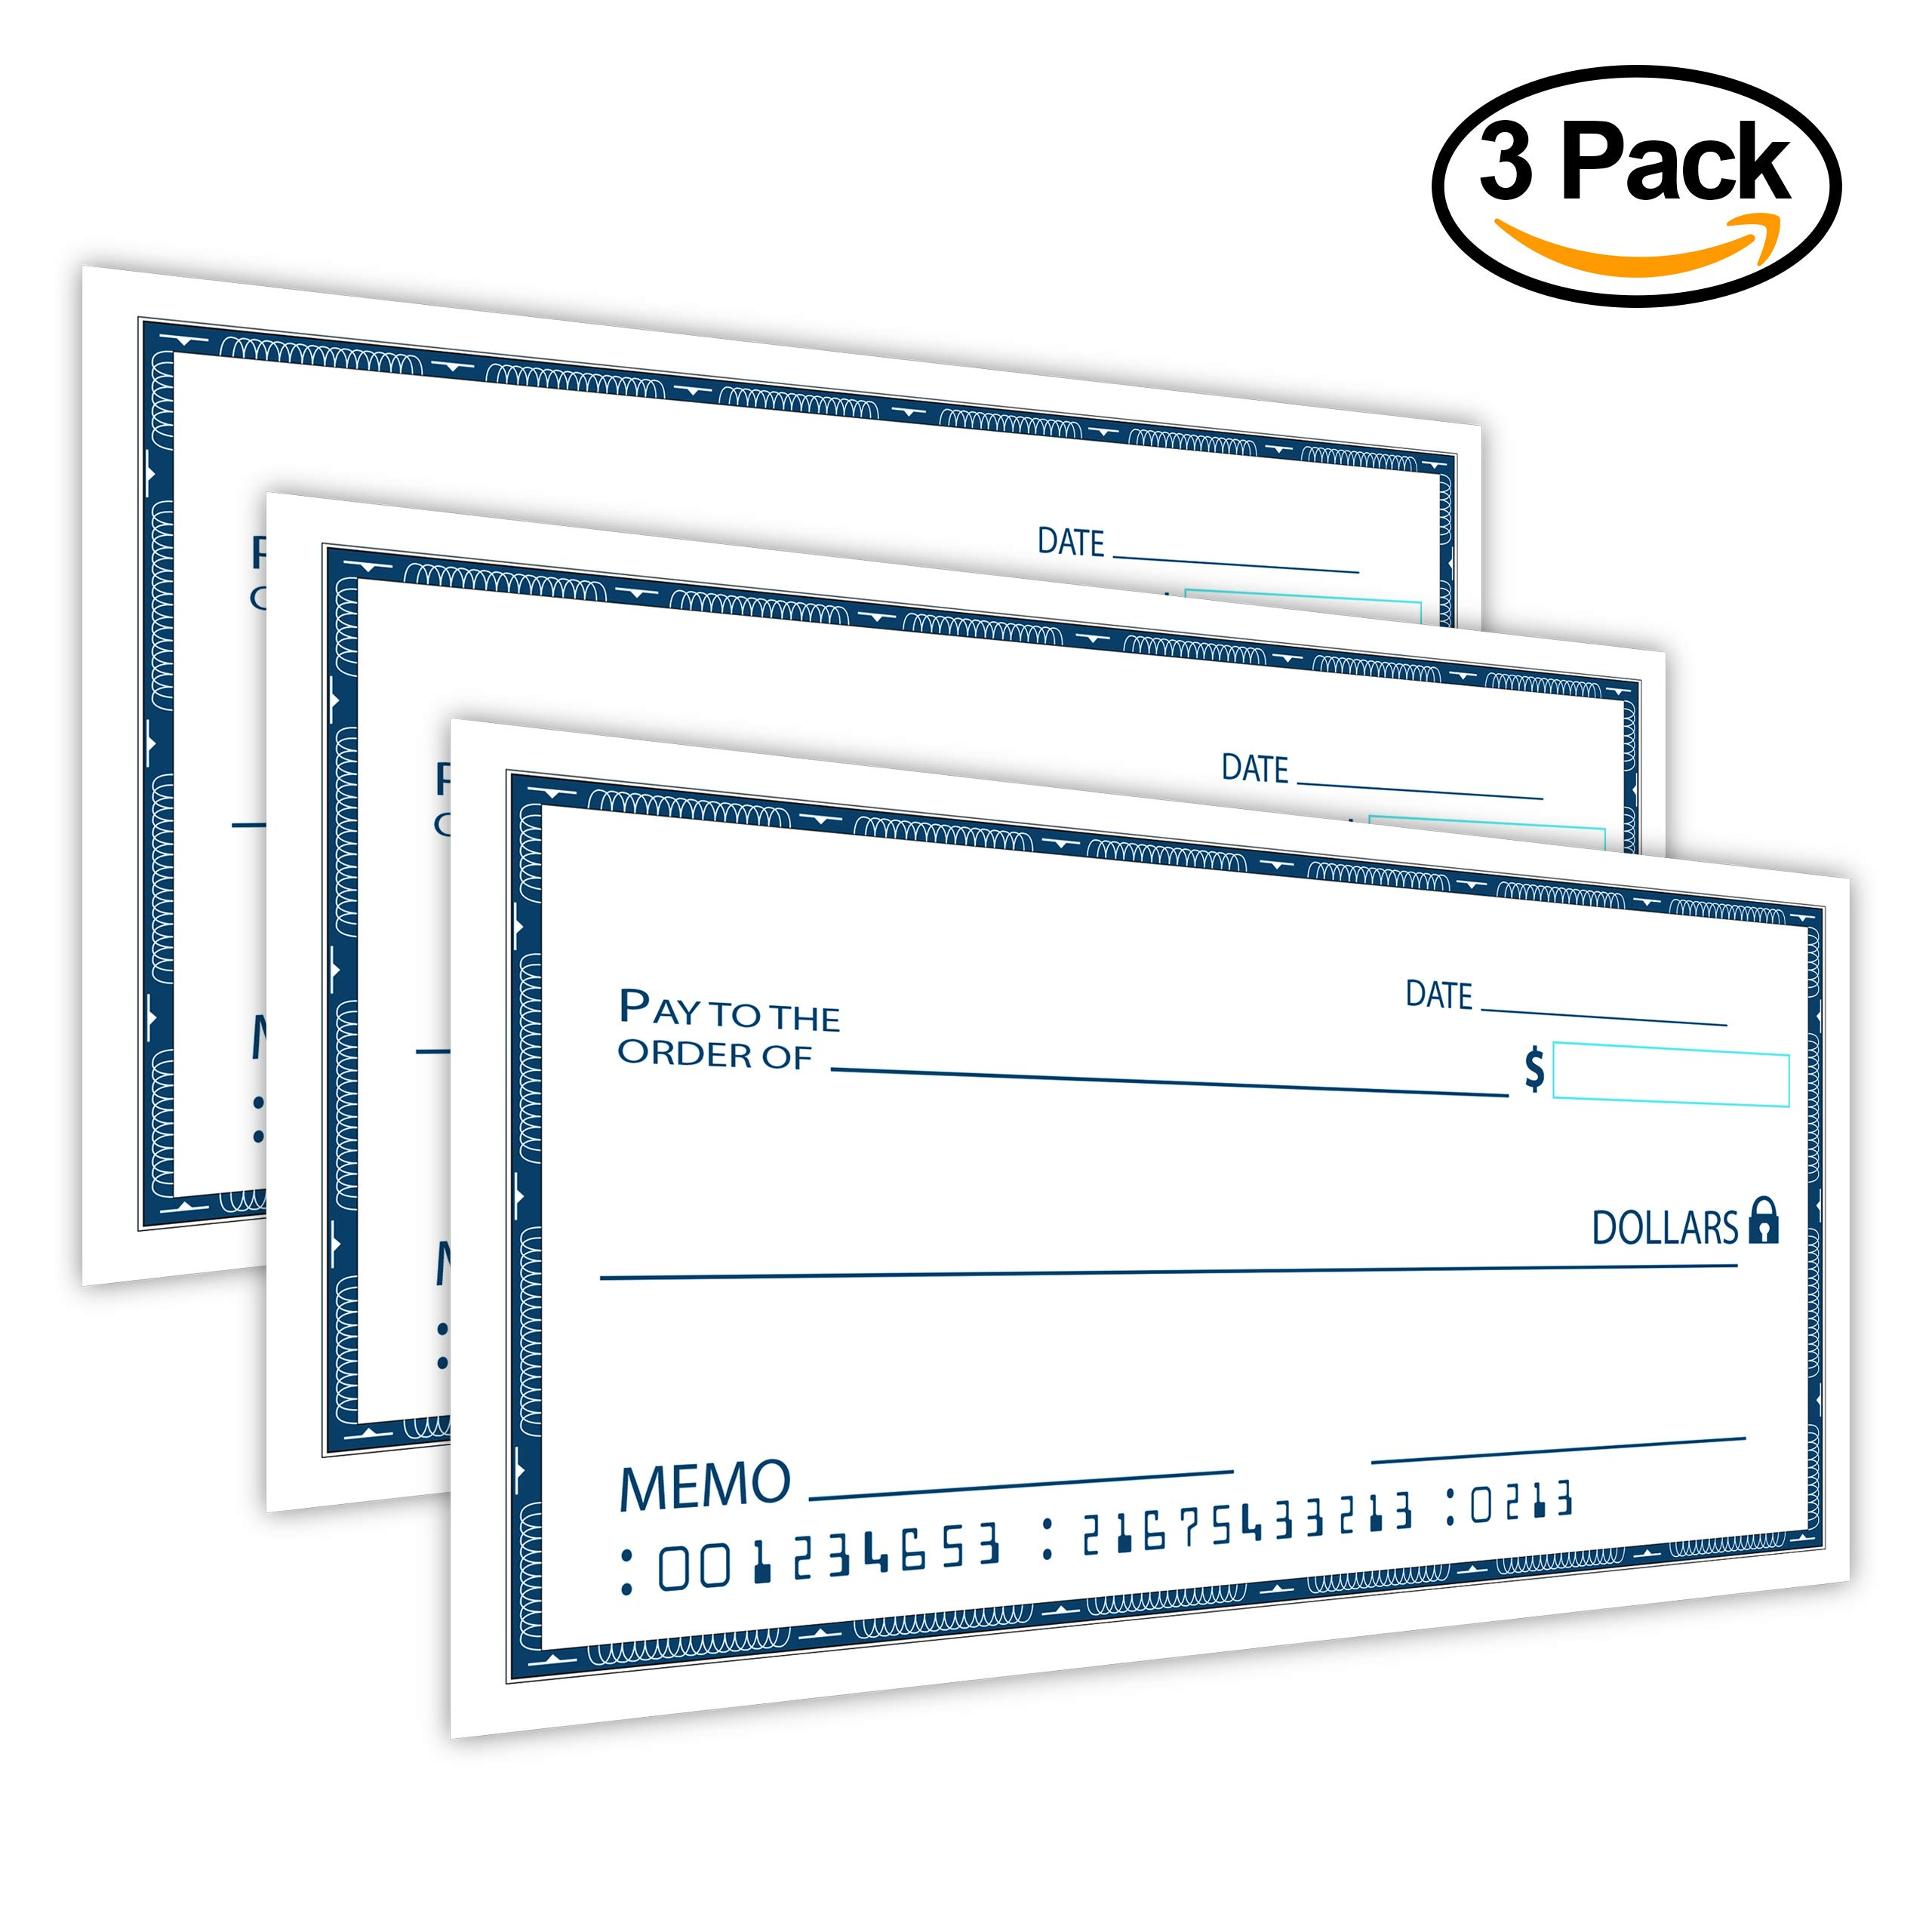 [Dry Erase] 24'' x 48'' Oversize Giant Check - Large Fake Checks - Reusable Big Blank Presentation Check for Charity Donation, Lottery, Raffle, Novelty, Fundraiser, Endowment, Gag Gift (White) (3) by JJ CARE